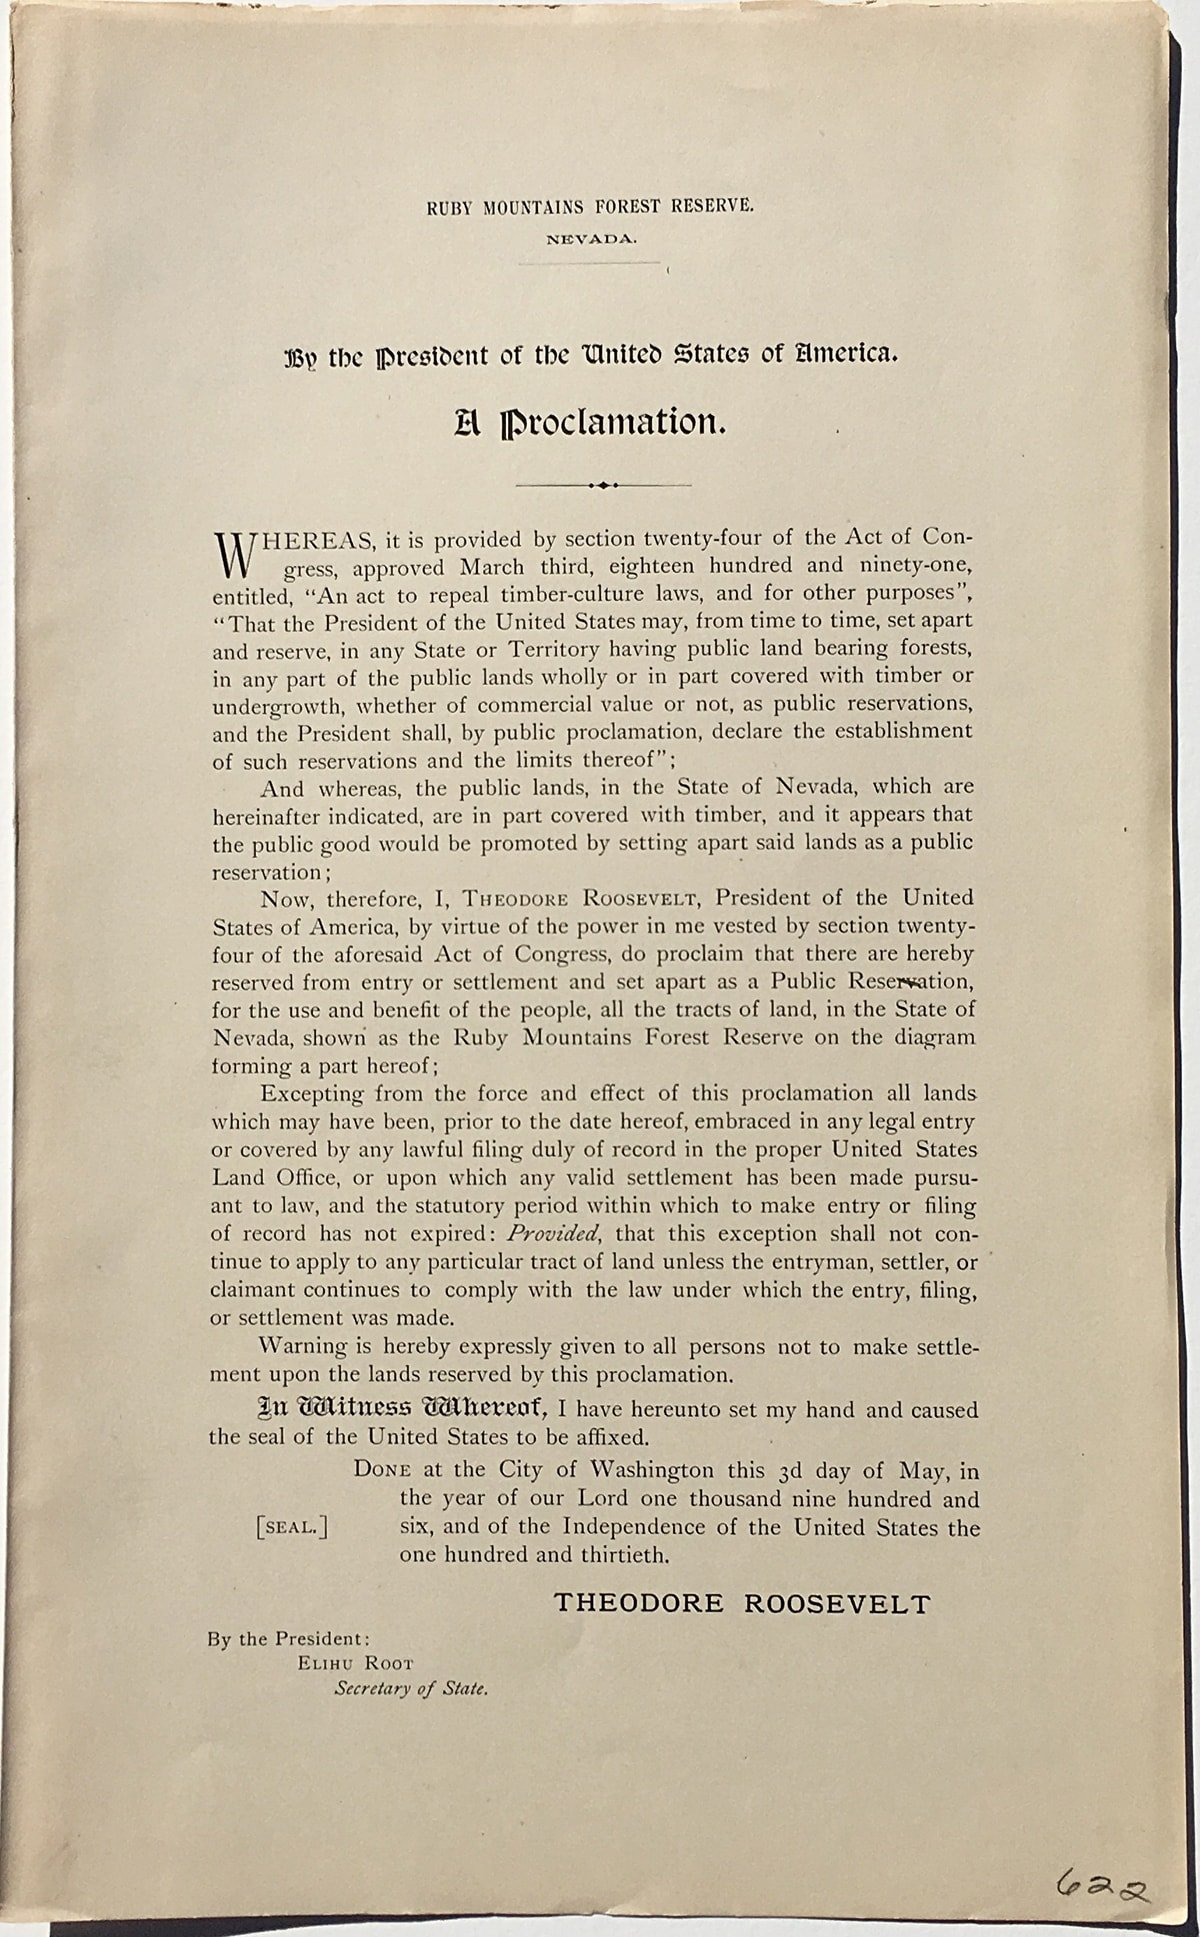 rare theodore roosevelt proclamations creating national